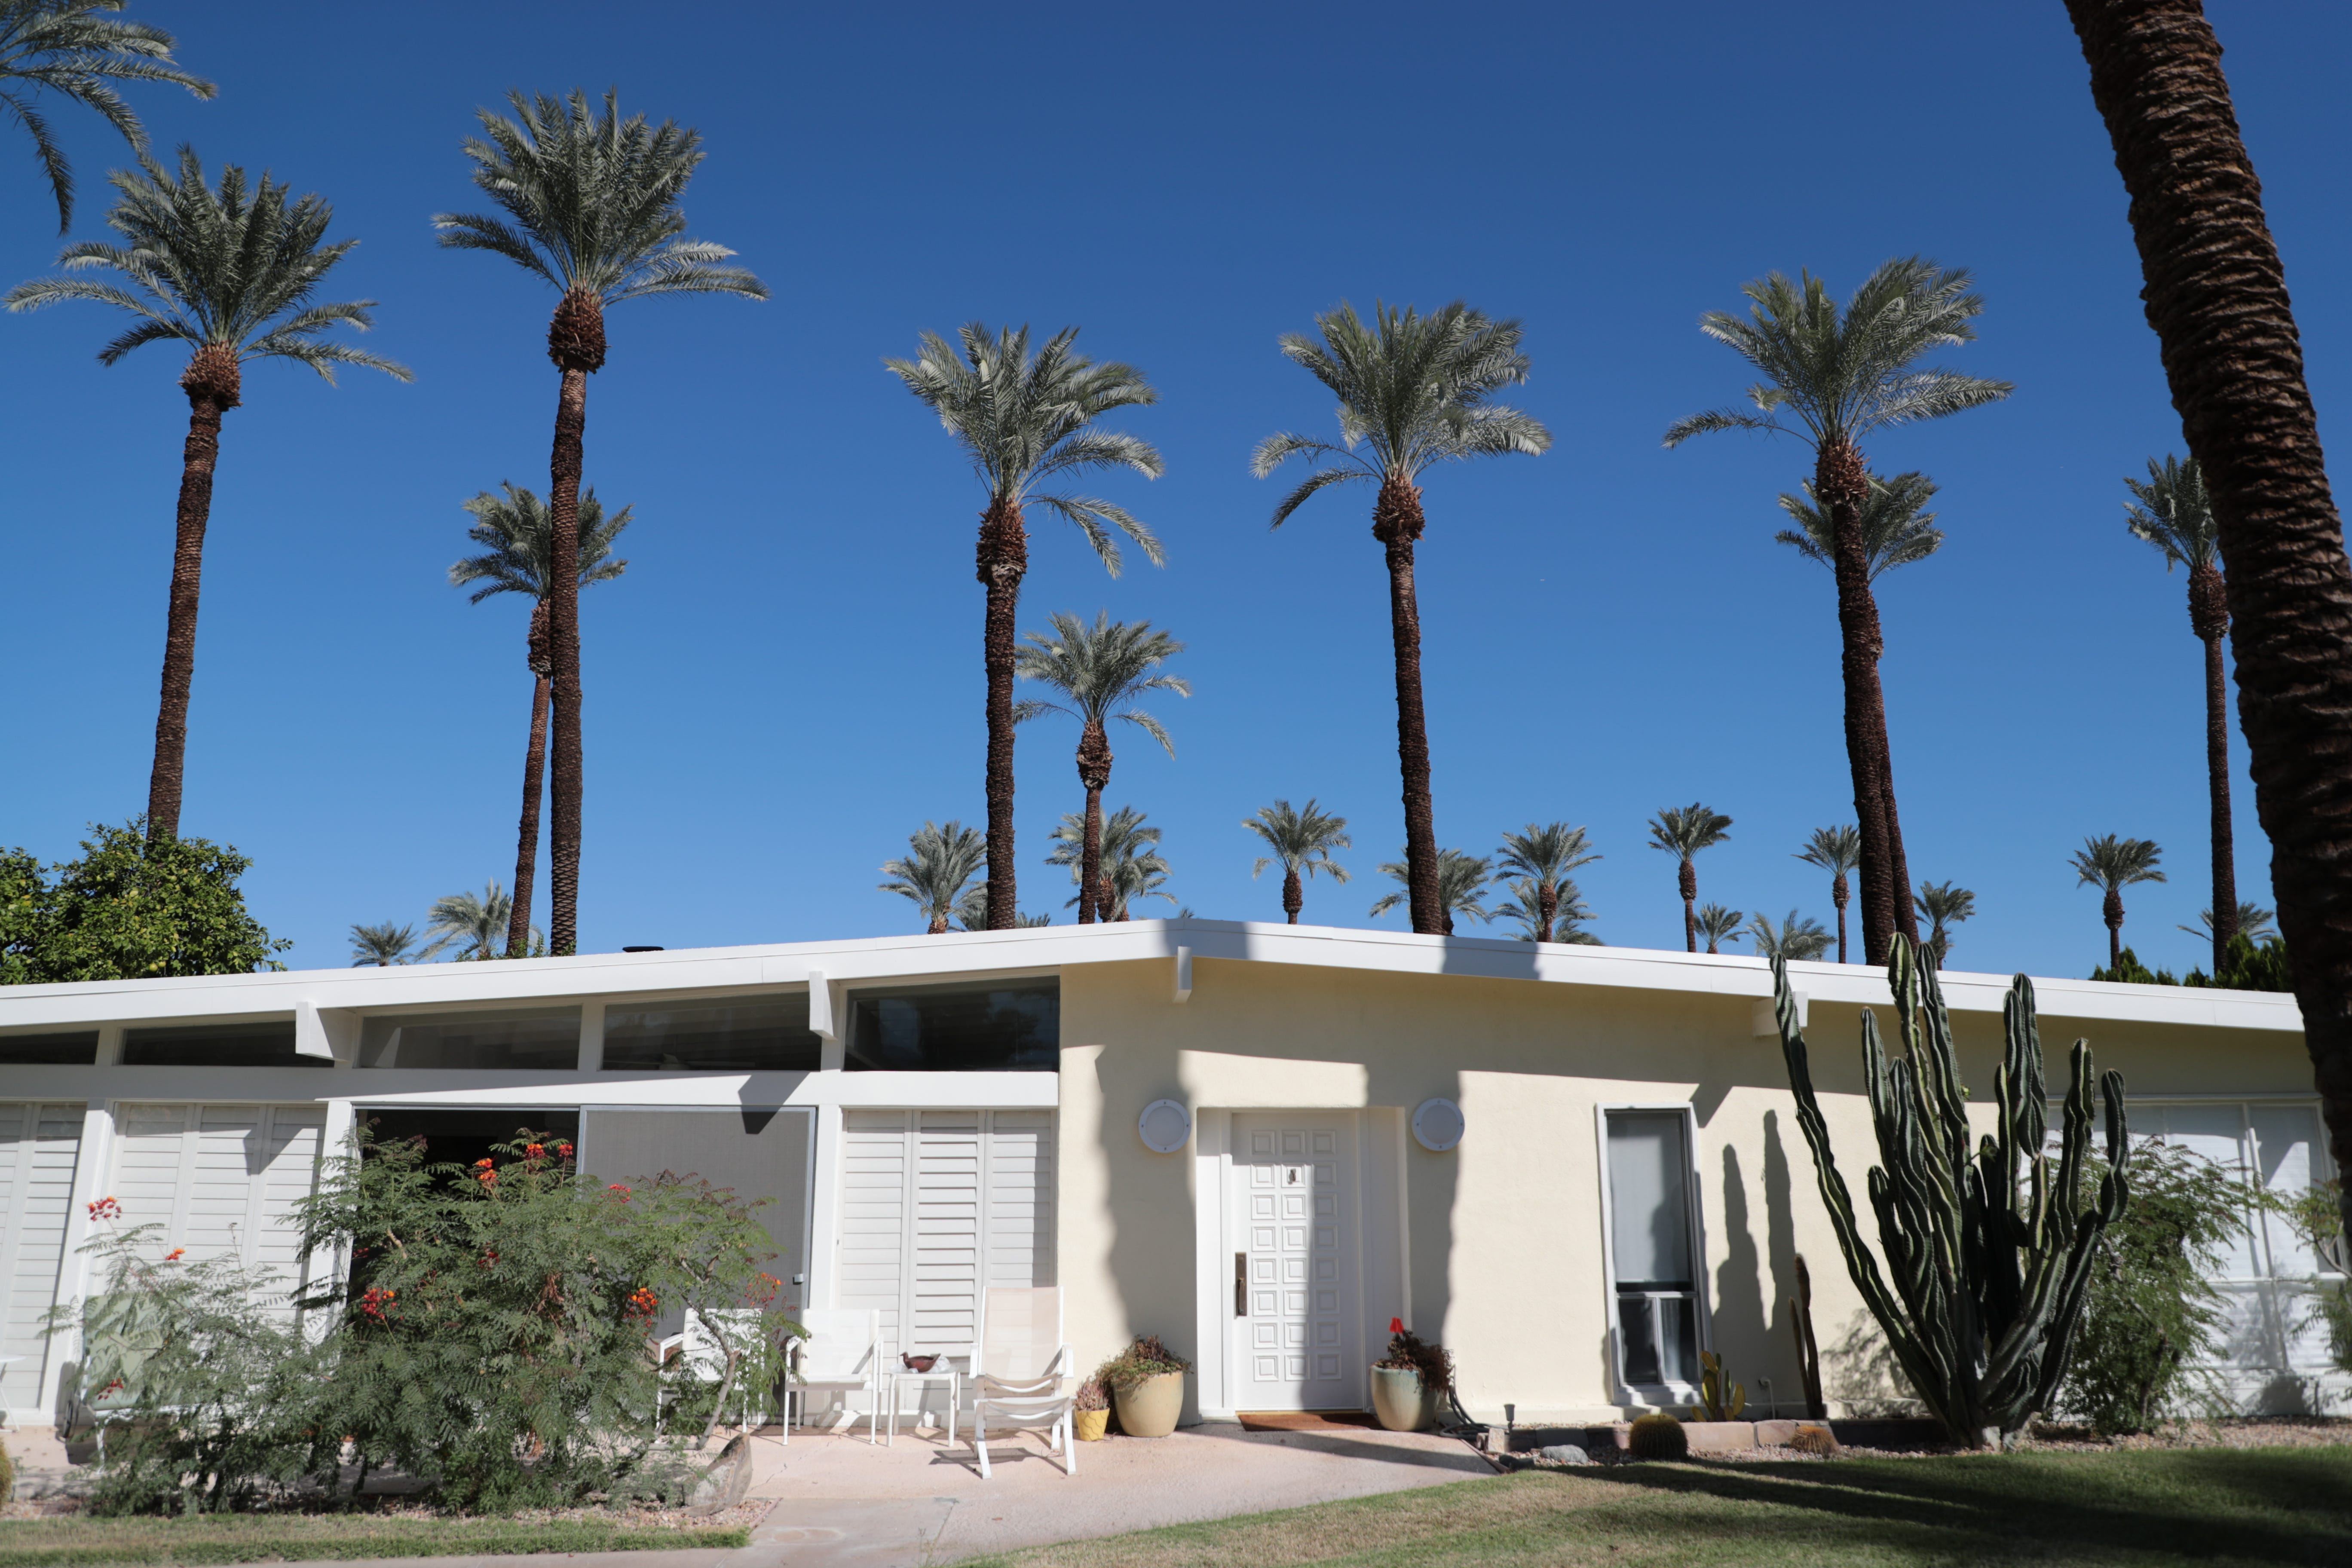 mod mirage\u0027 explores hidden architectural gems in rancho miragetake a 1 minute mid century modern tour of rancho mirage\u0027s hidden gems